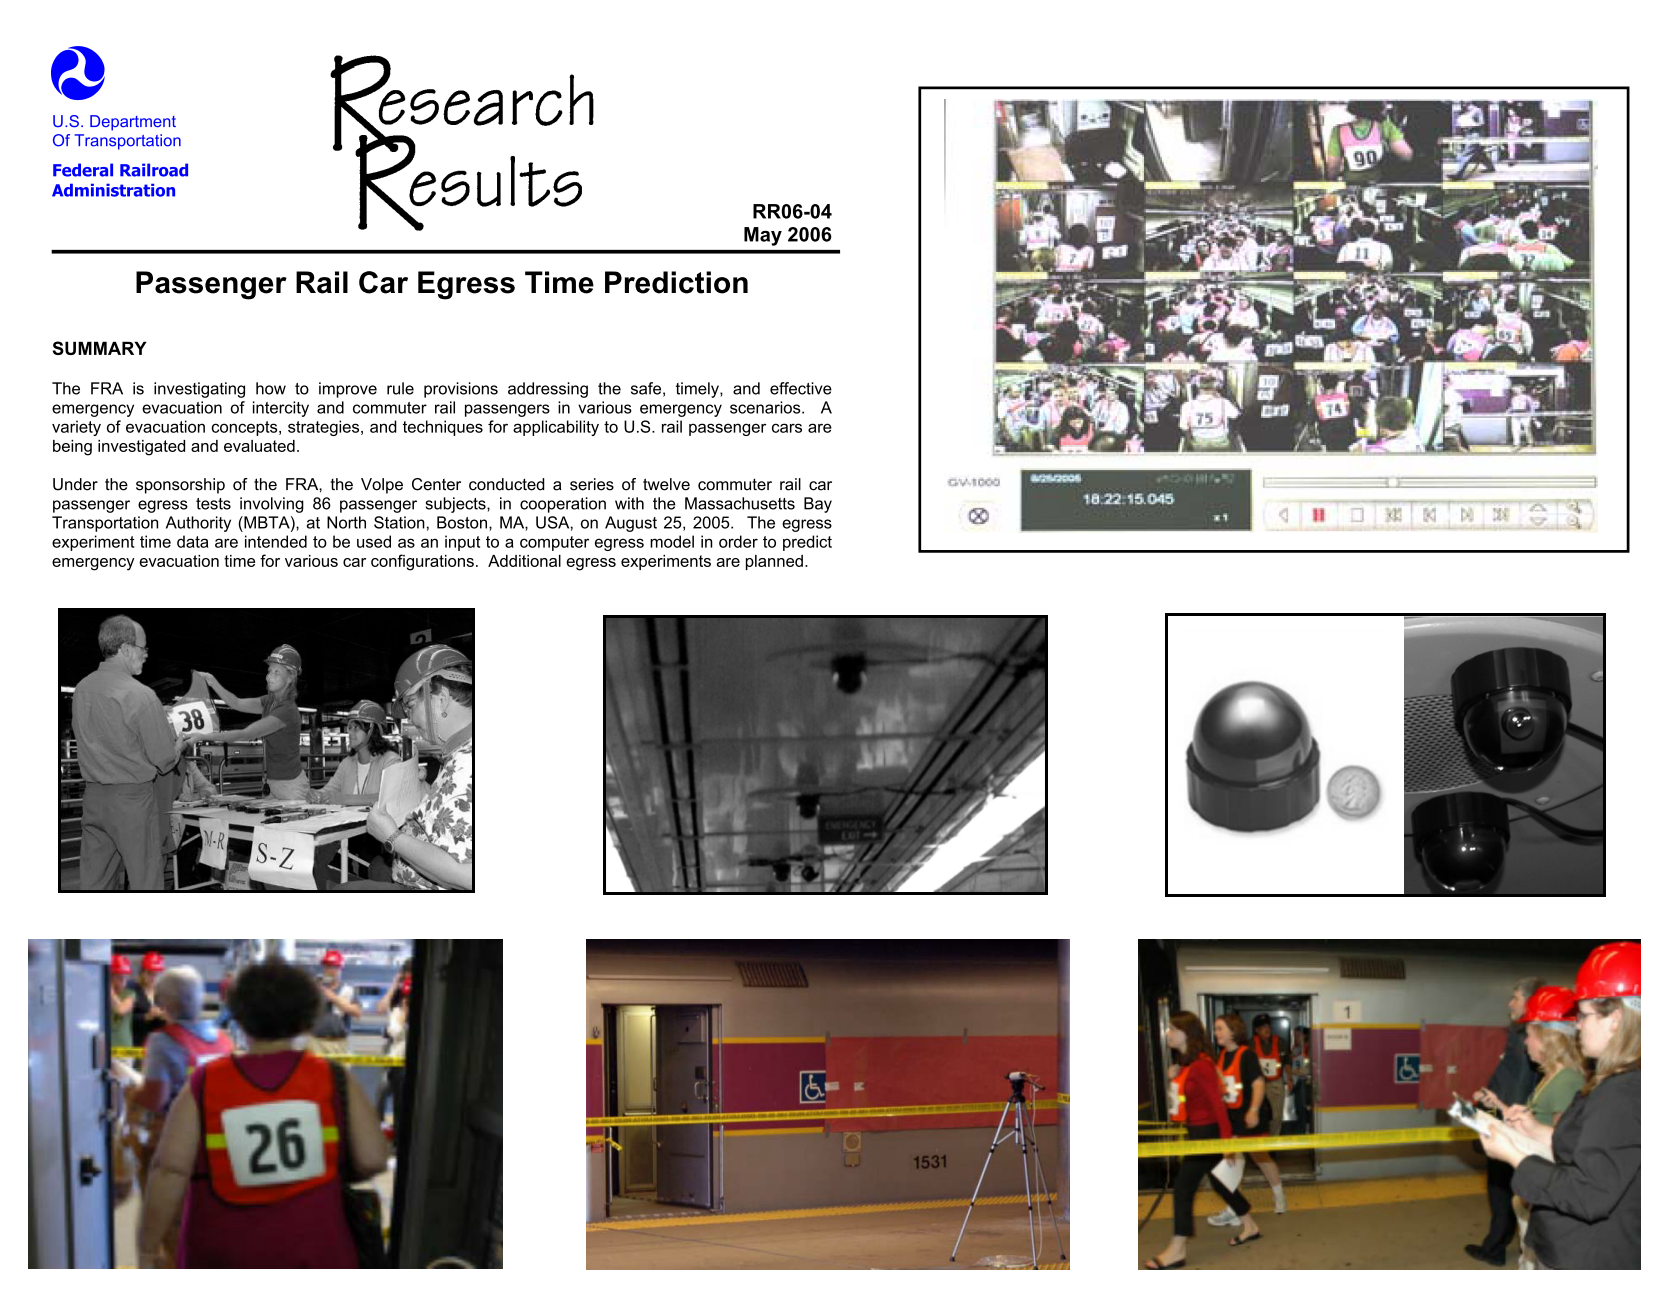 Cabrall-egress research results